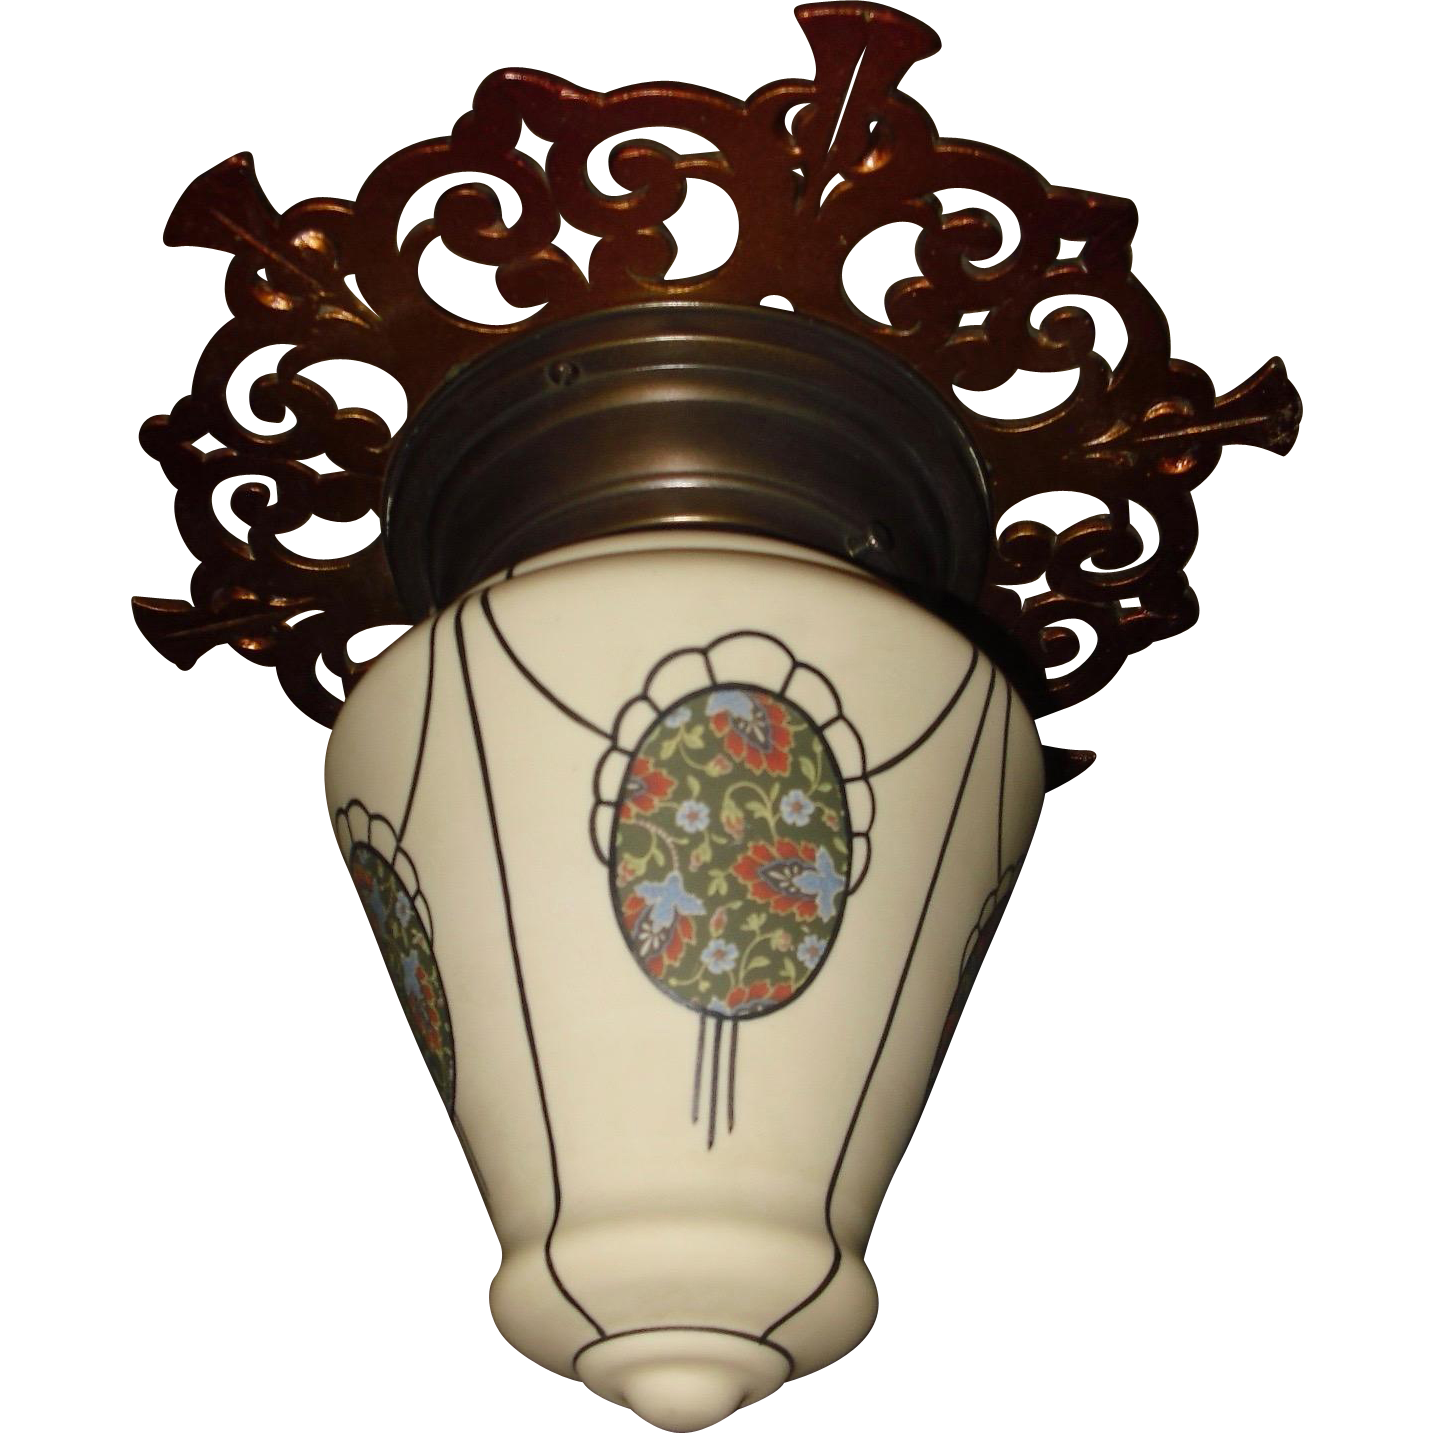 Flush Mount Ceiling light - Decorated Bristol Glass Shade in Decorative Fixture